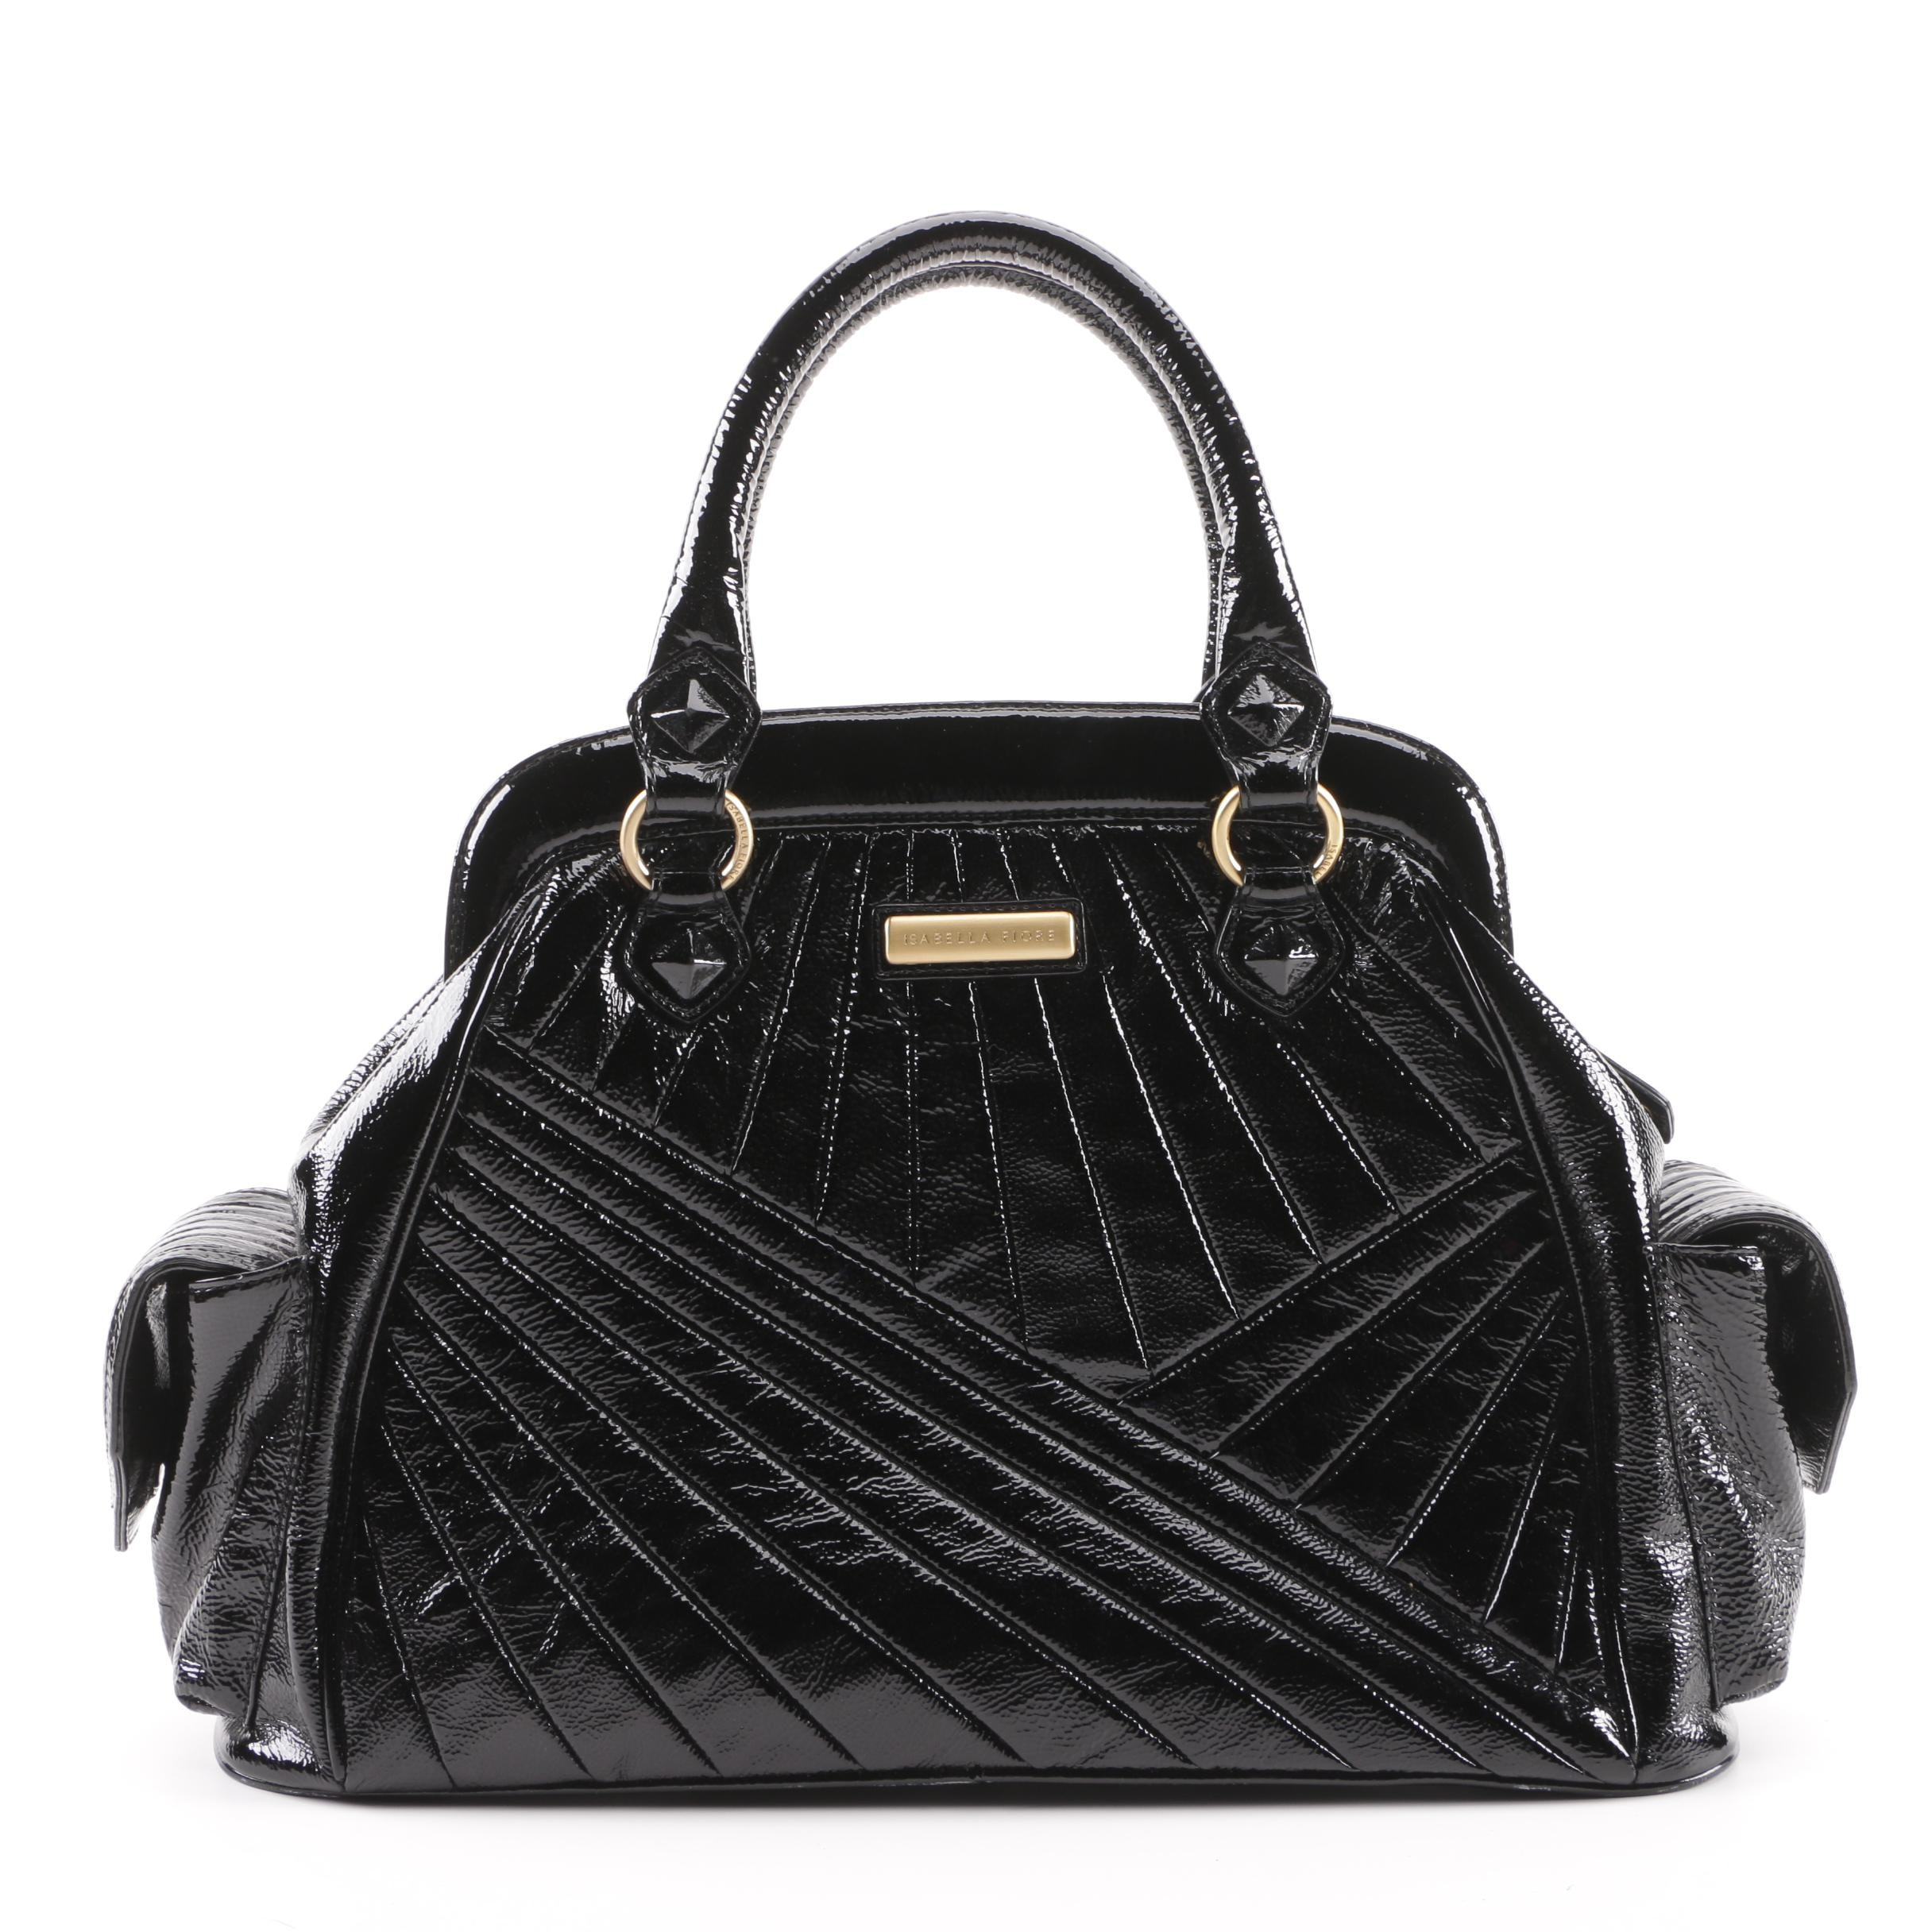 Isabella Fiore Quilted Black Patent Leather Satchel